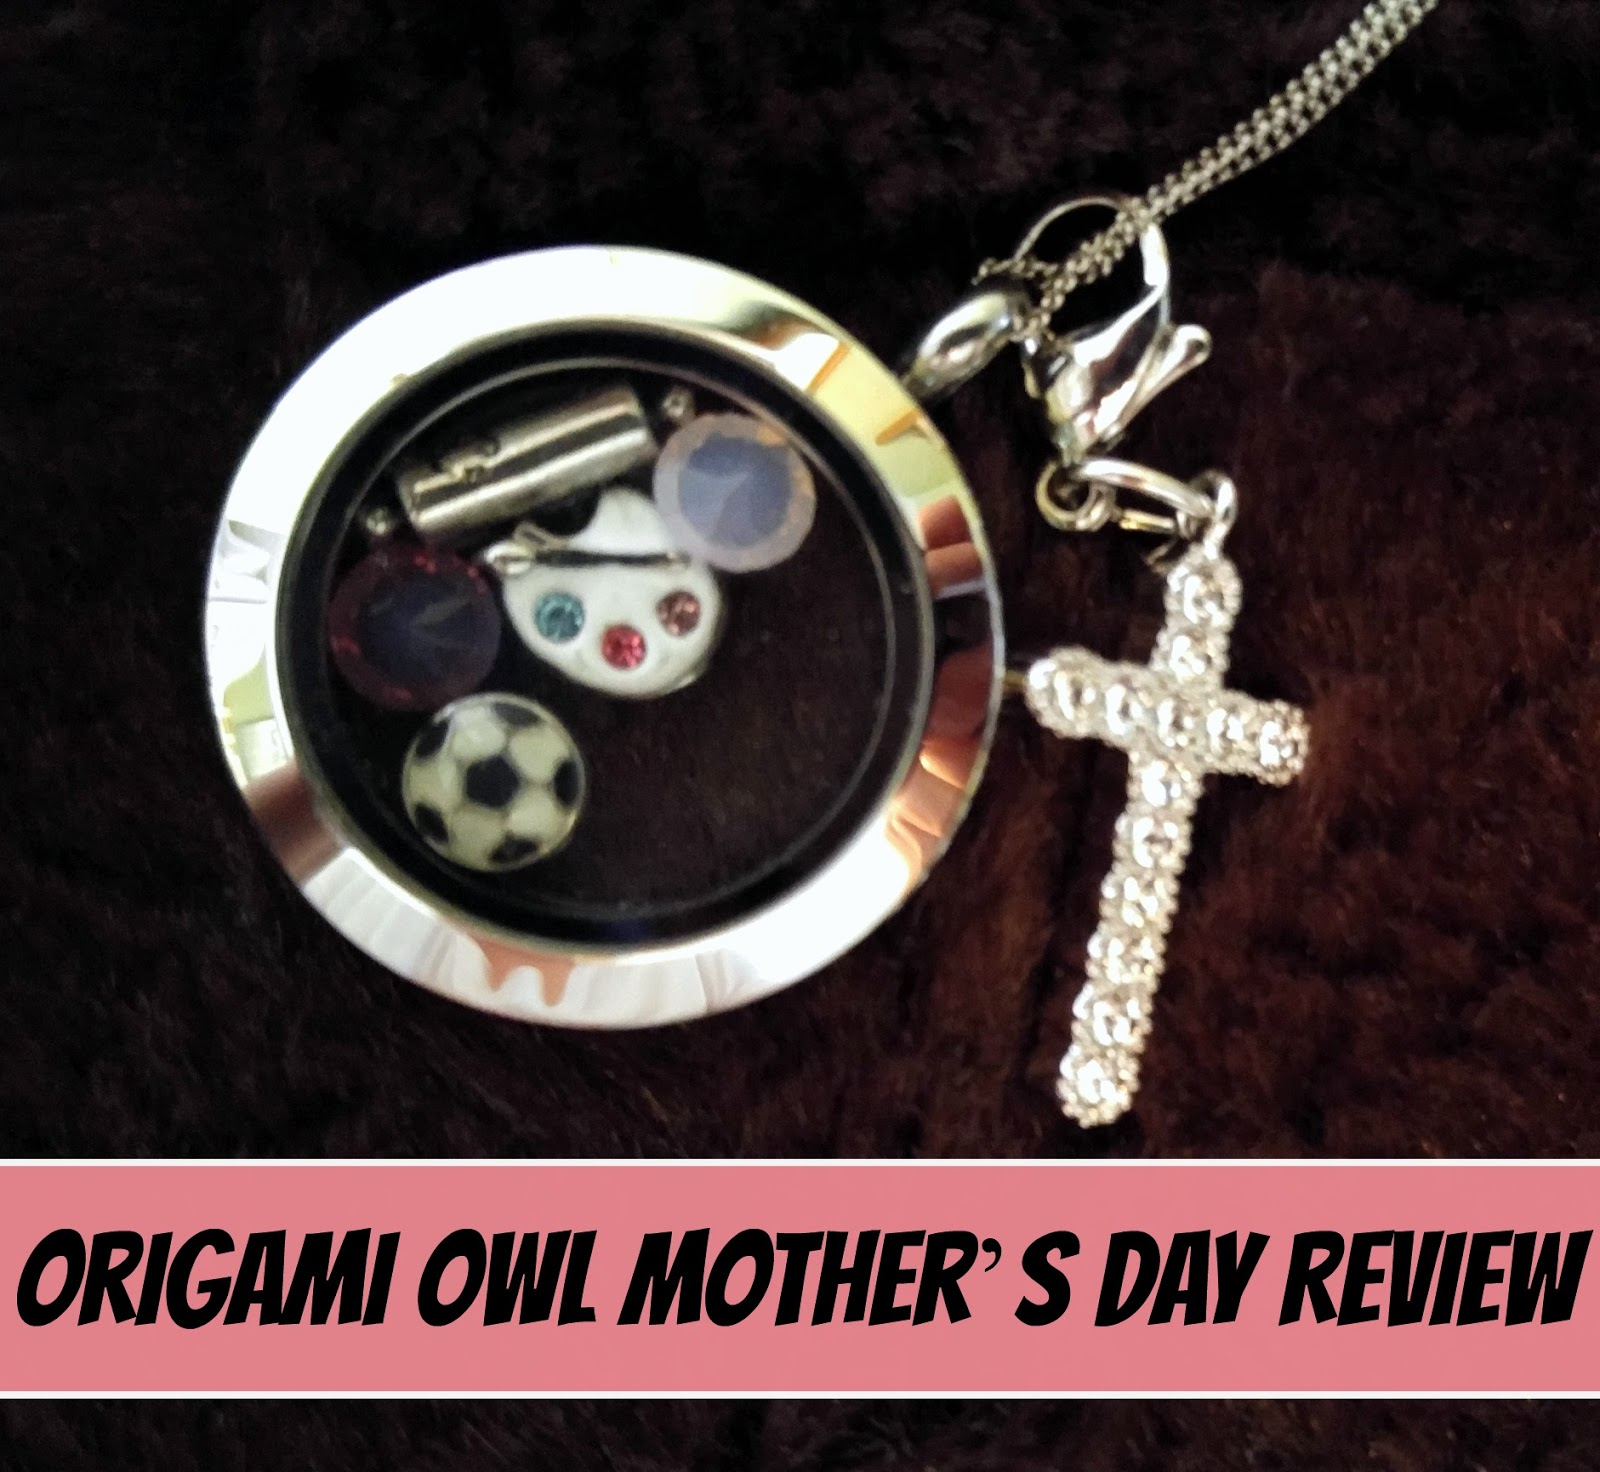 One momma saving money april 2016 one of my favorite pieces of jewelry is a locket my husband gave me after having out children it is so personal as i can wear the kids close to me at jeuxipadfo Images